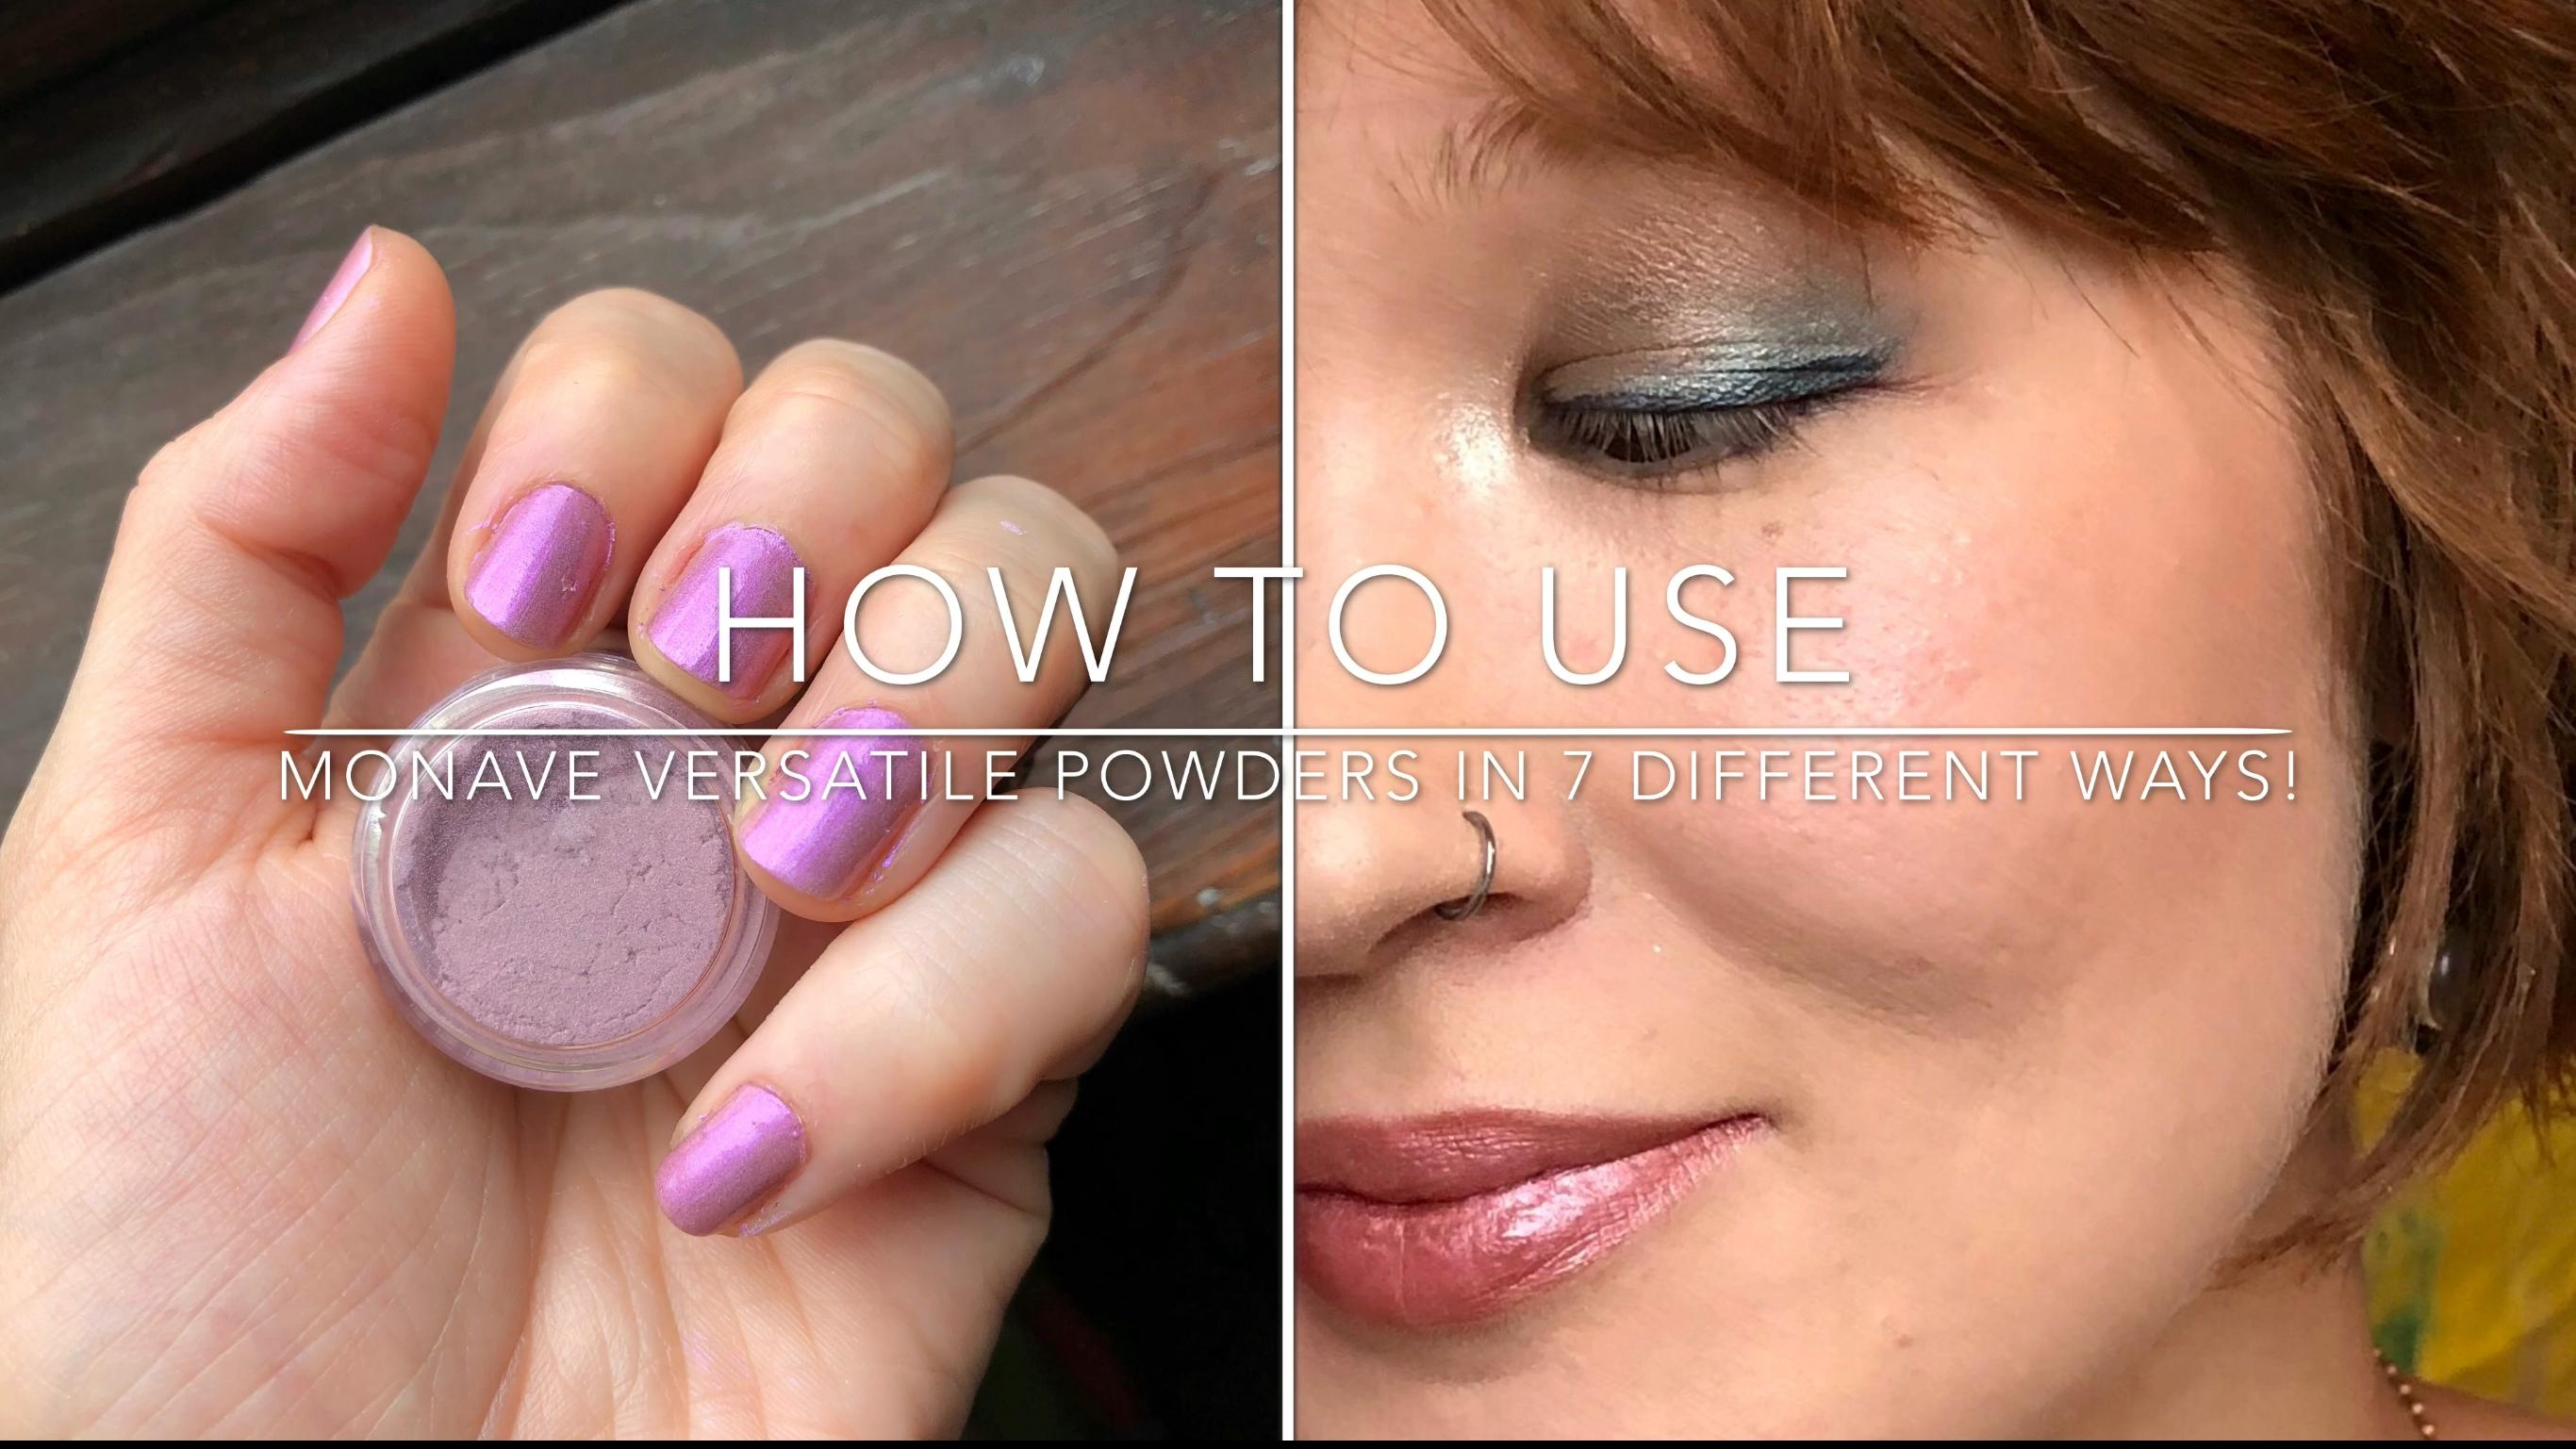 How to Use Monave Mineral Versatile Shadows on the Eyes, Cheeks, Lips, and Nails!